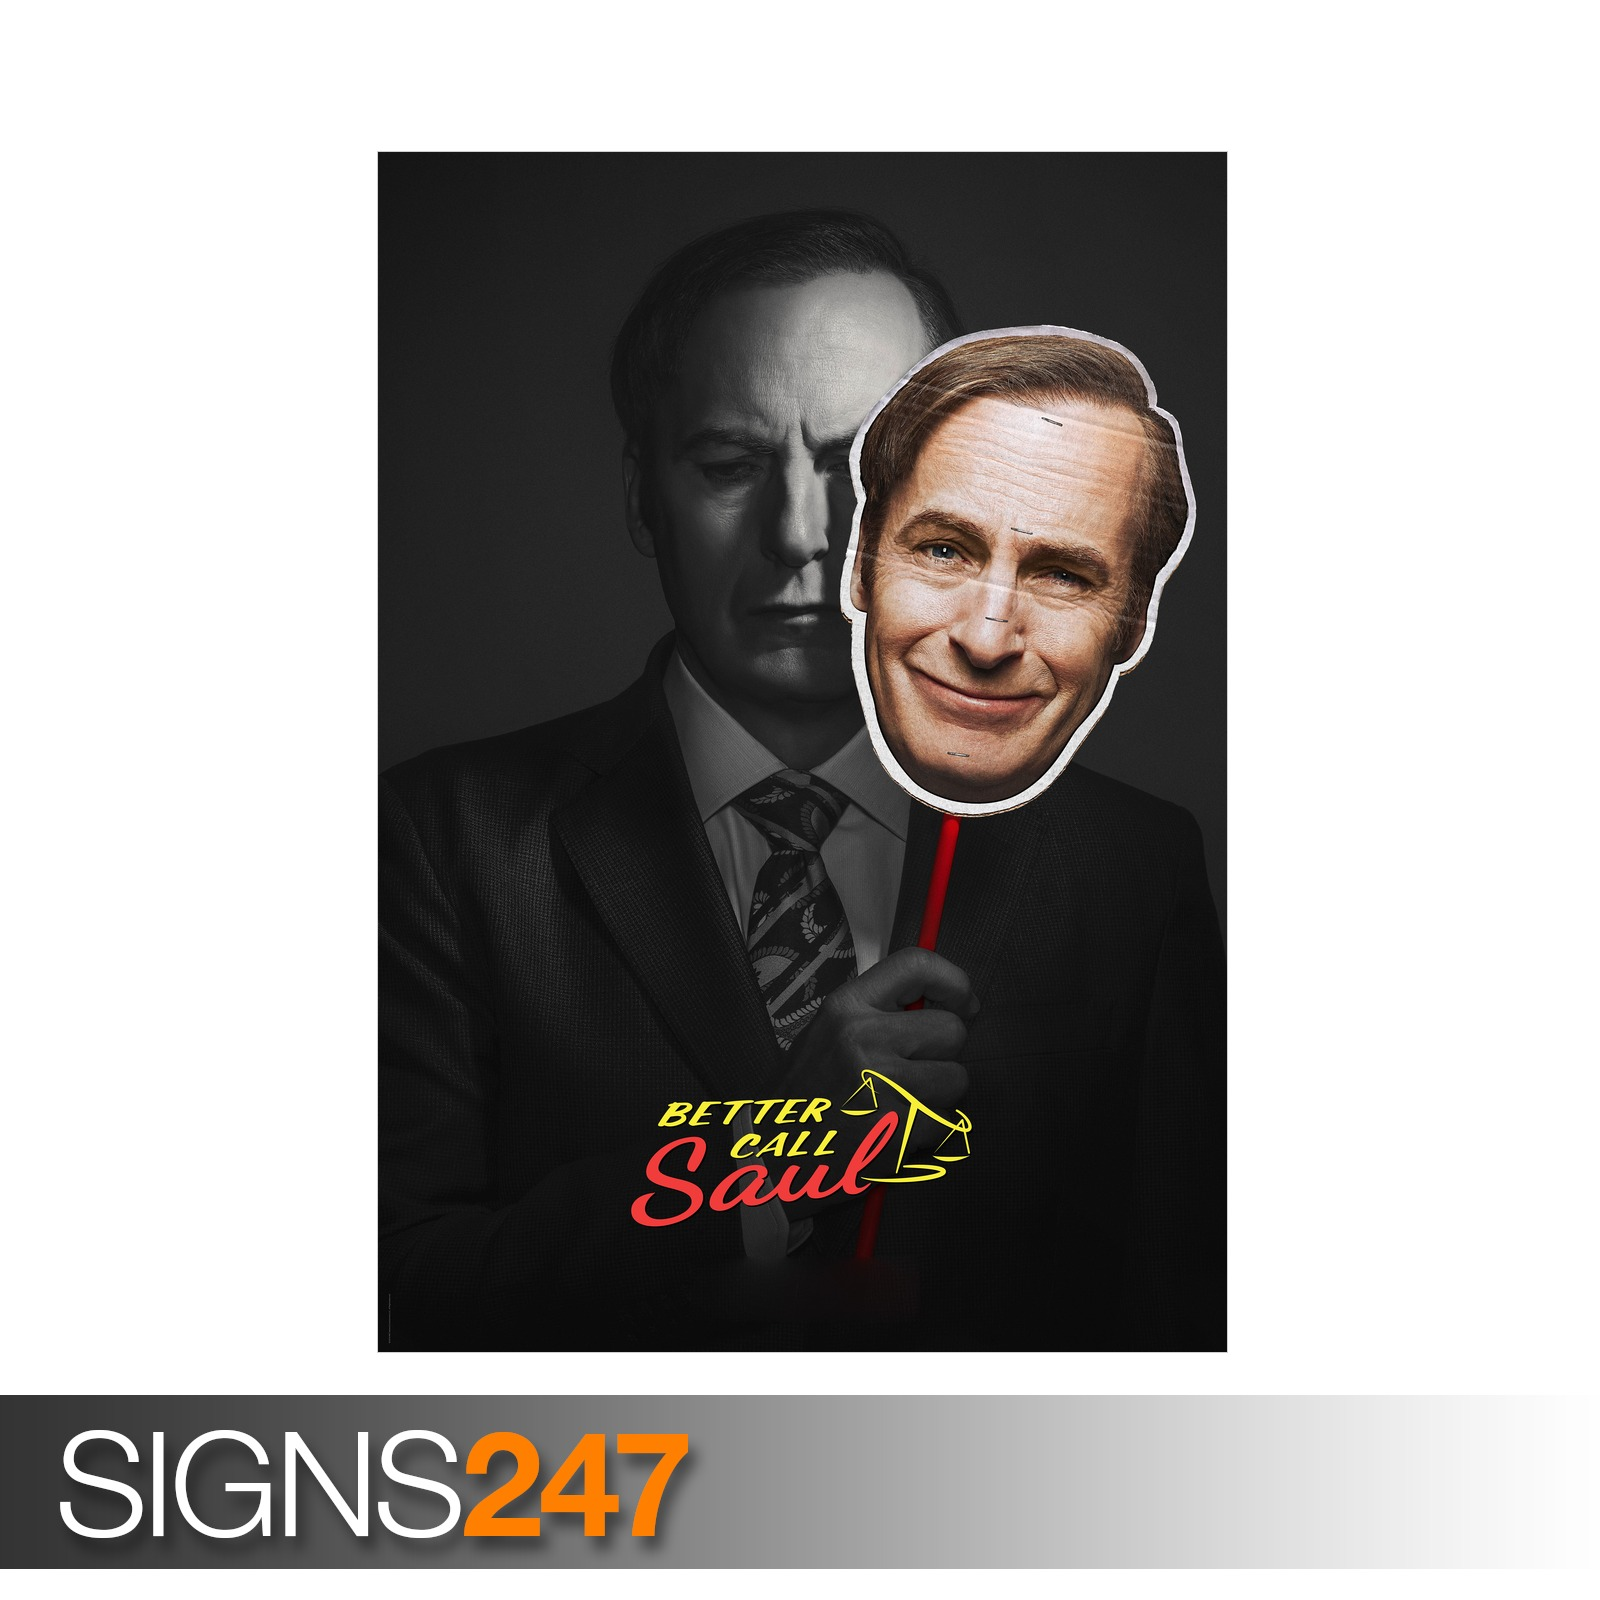 MOVIE POSTER Photo Picture Poster Print Art A0 to A4 ZZ029 BETTER CALL SAUL